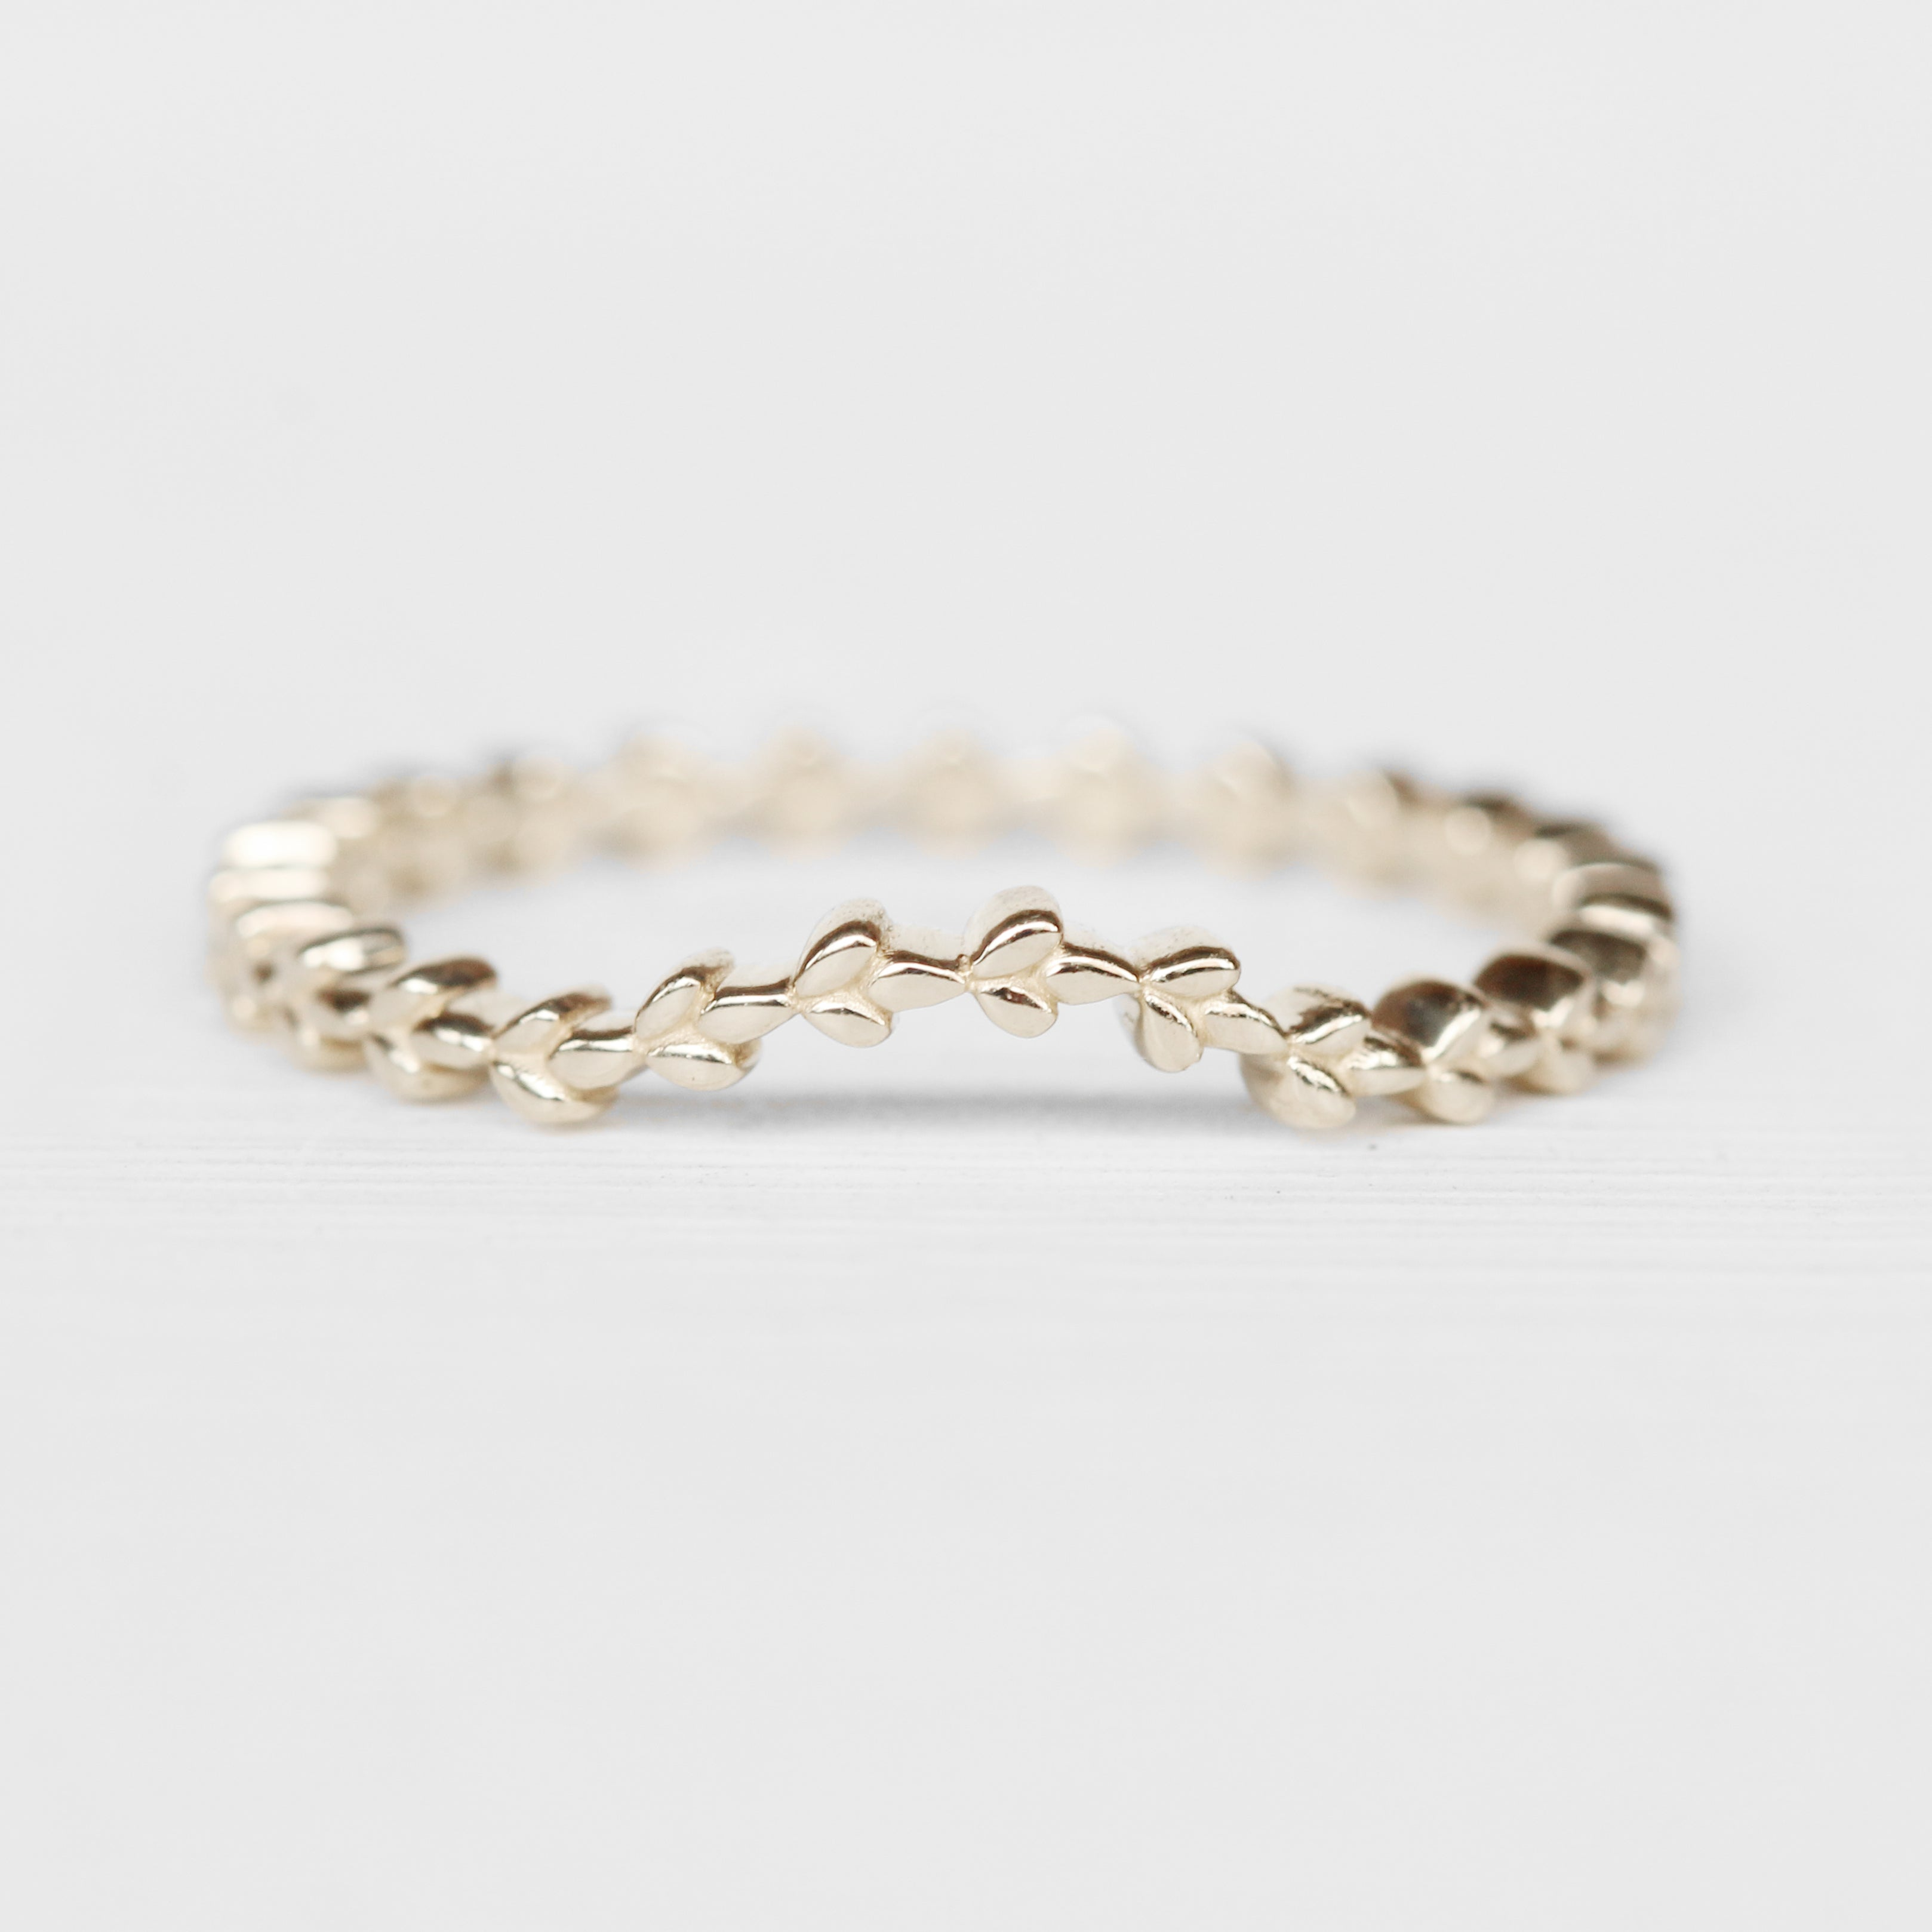 June - Floral leaf Contoured Wedding Stacking Band in Your Choice of 14K Gold - Salt & Pepper Celestial Diamond Engagement Rings and Wedding Bands  by Midwinter Co.